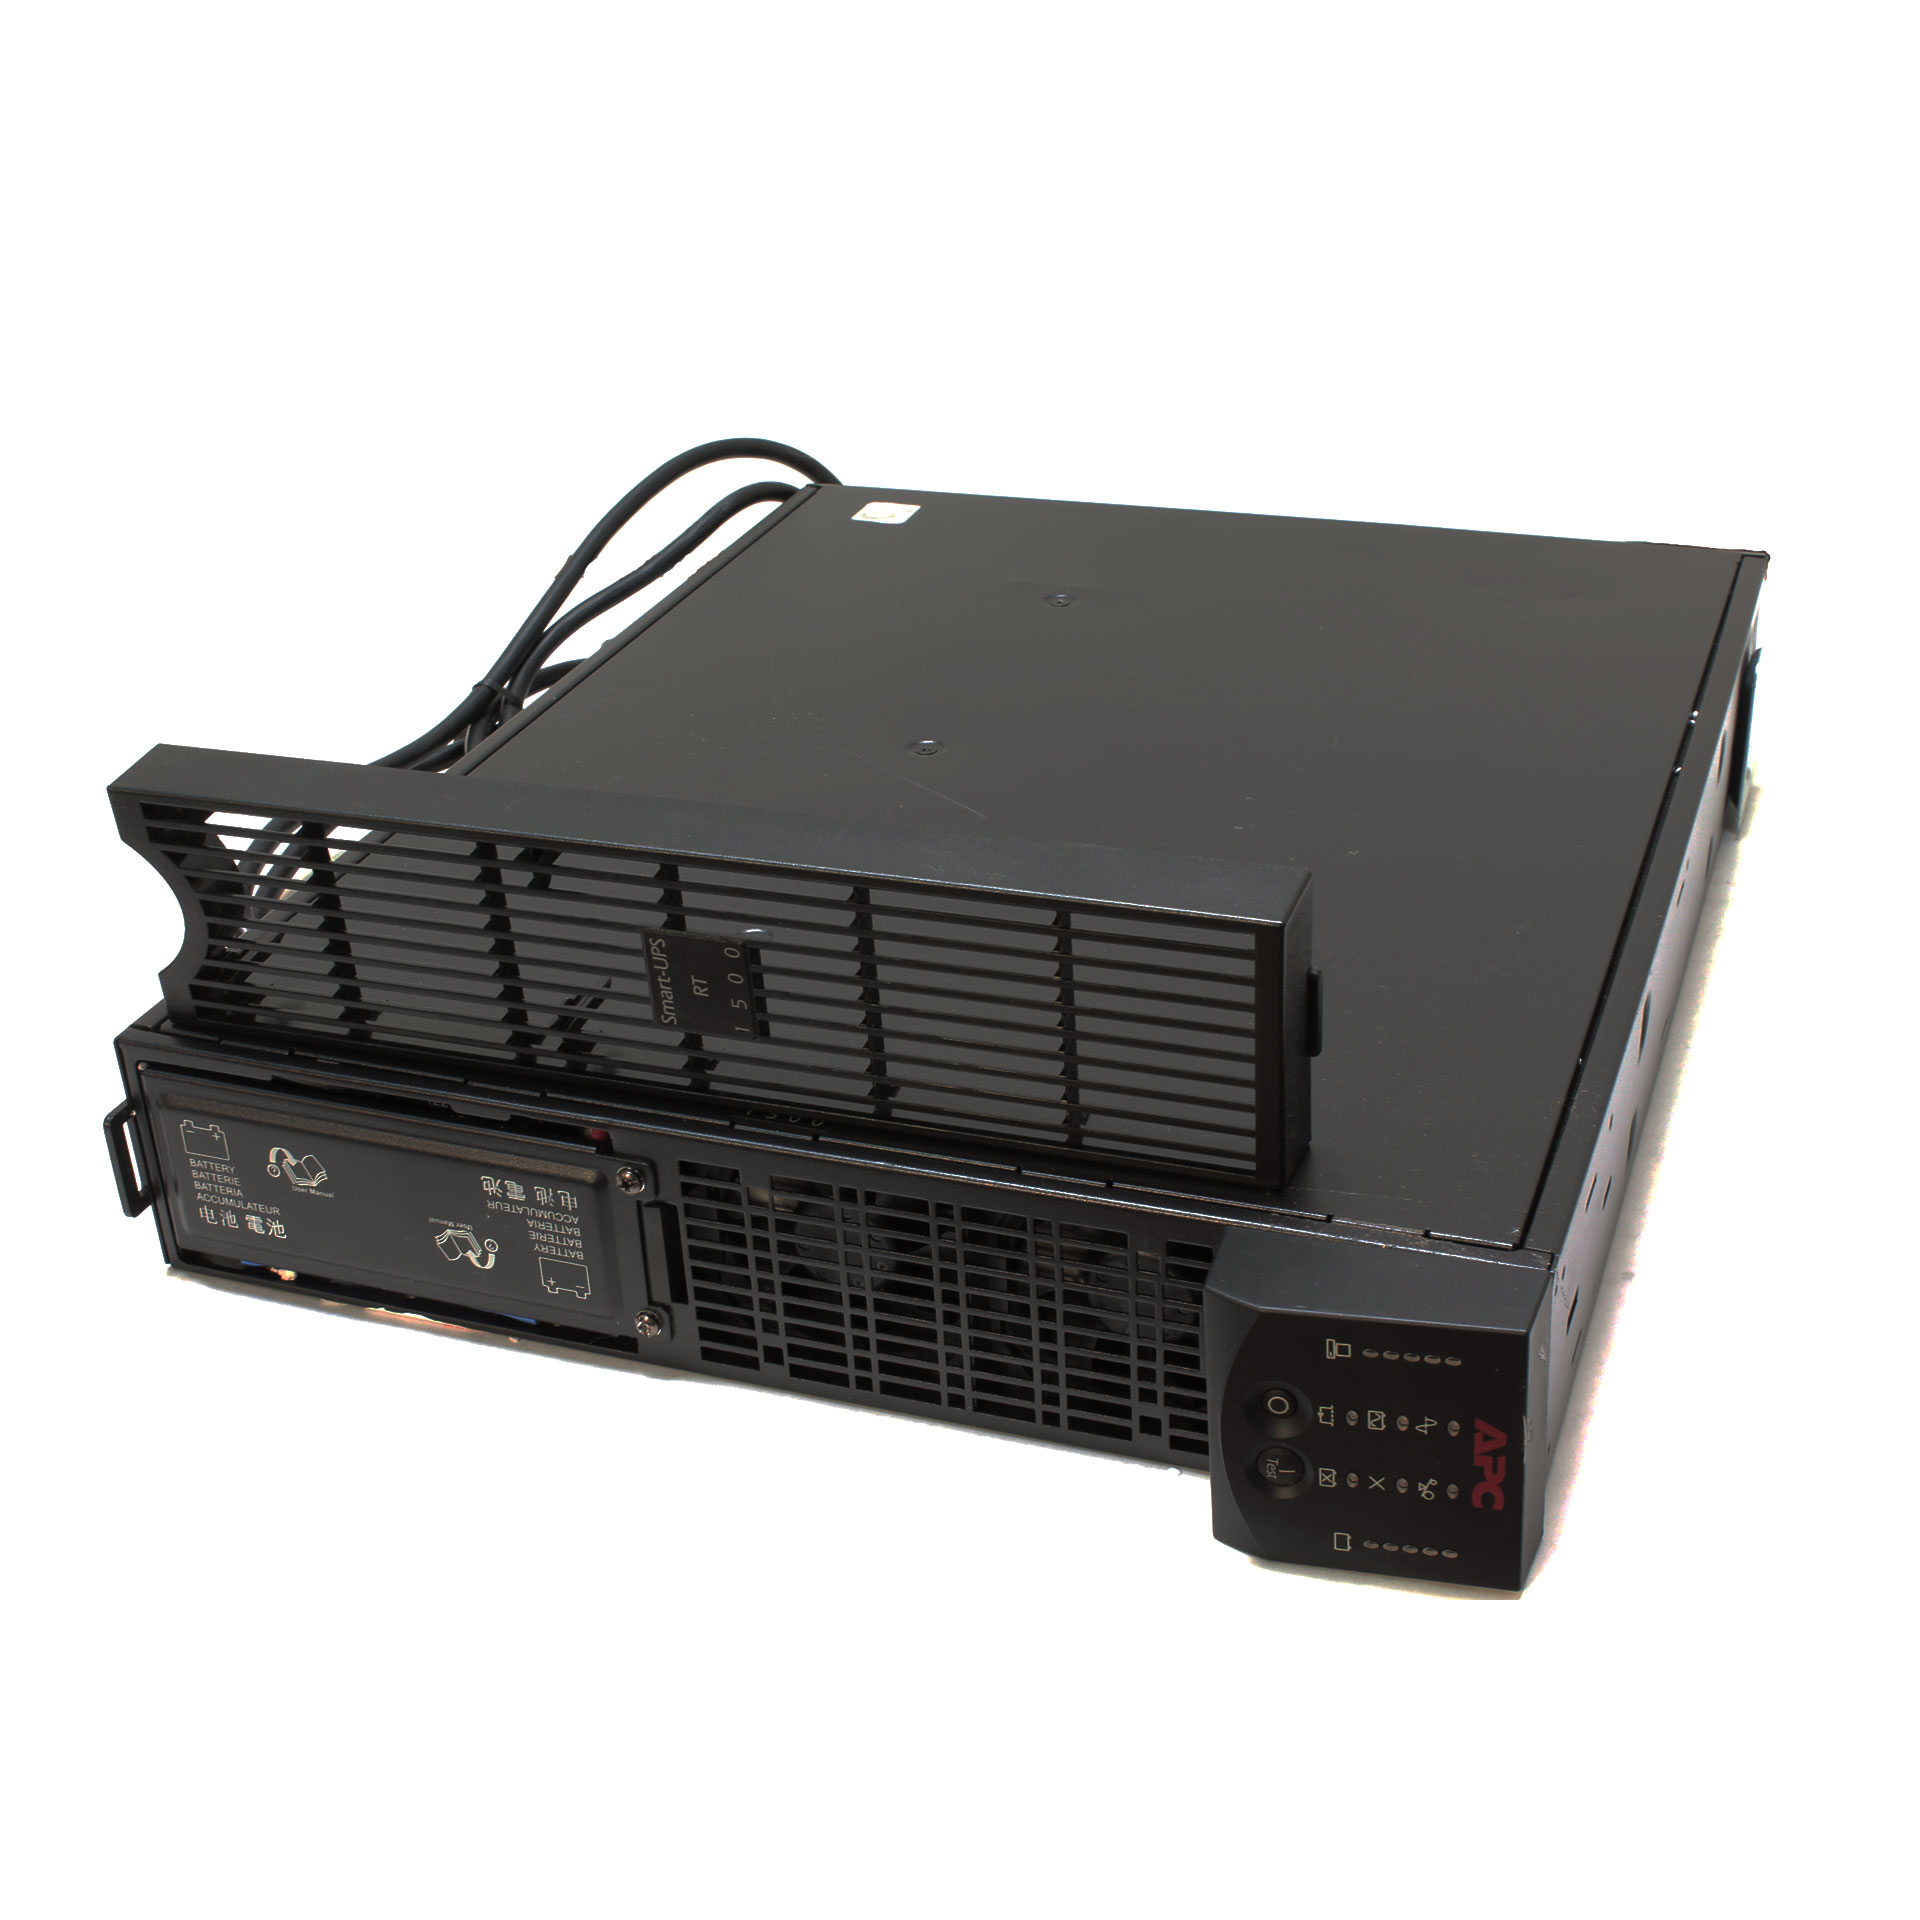 APC Smart-UPS RT 1500 Rack Tower UPS SURTA1500RMXL2U 120V